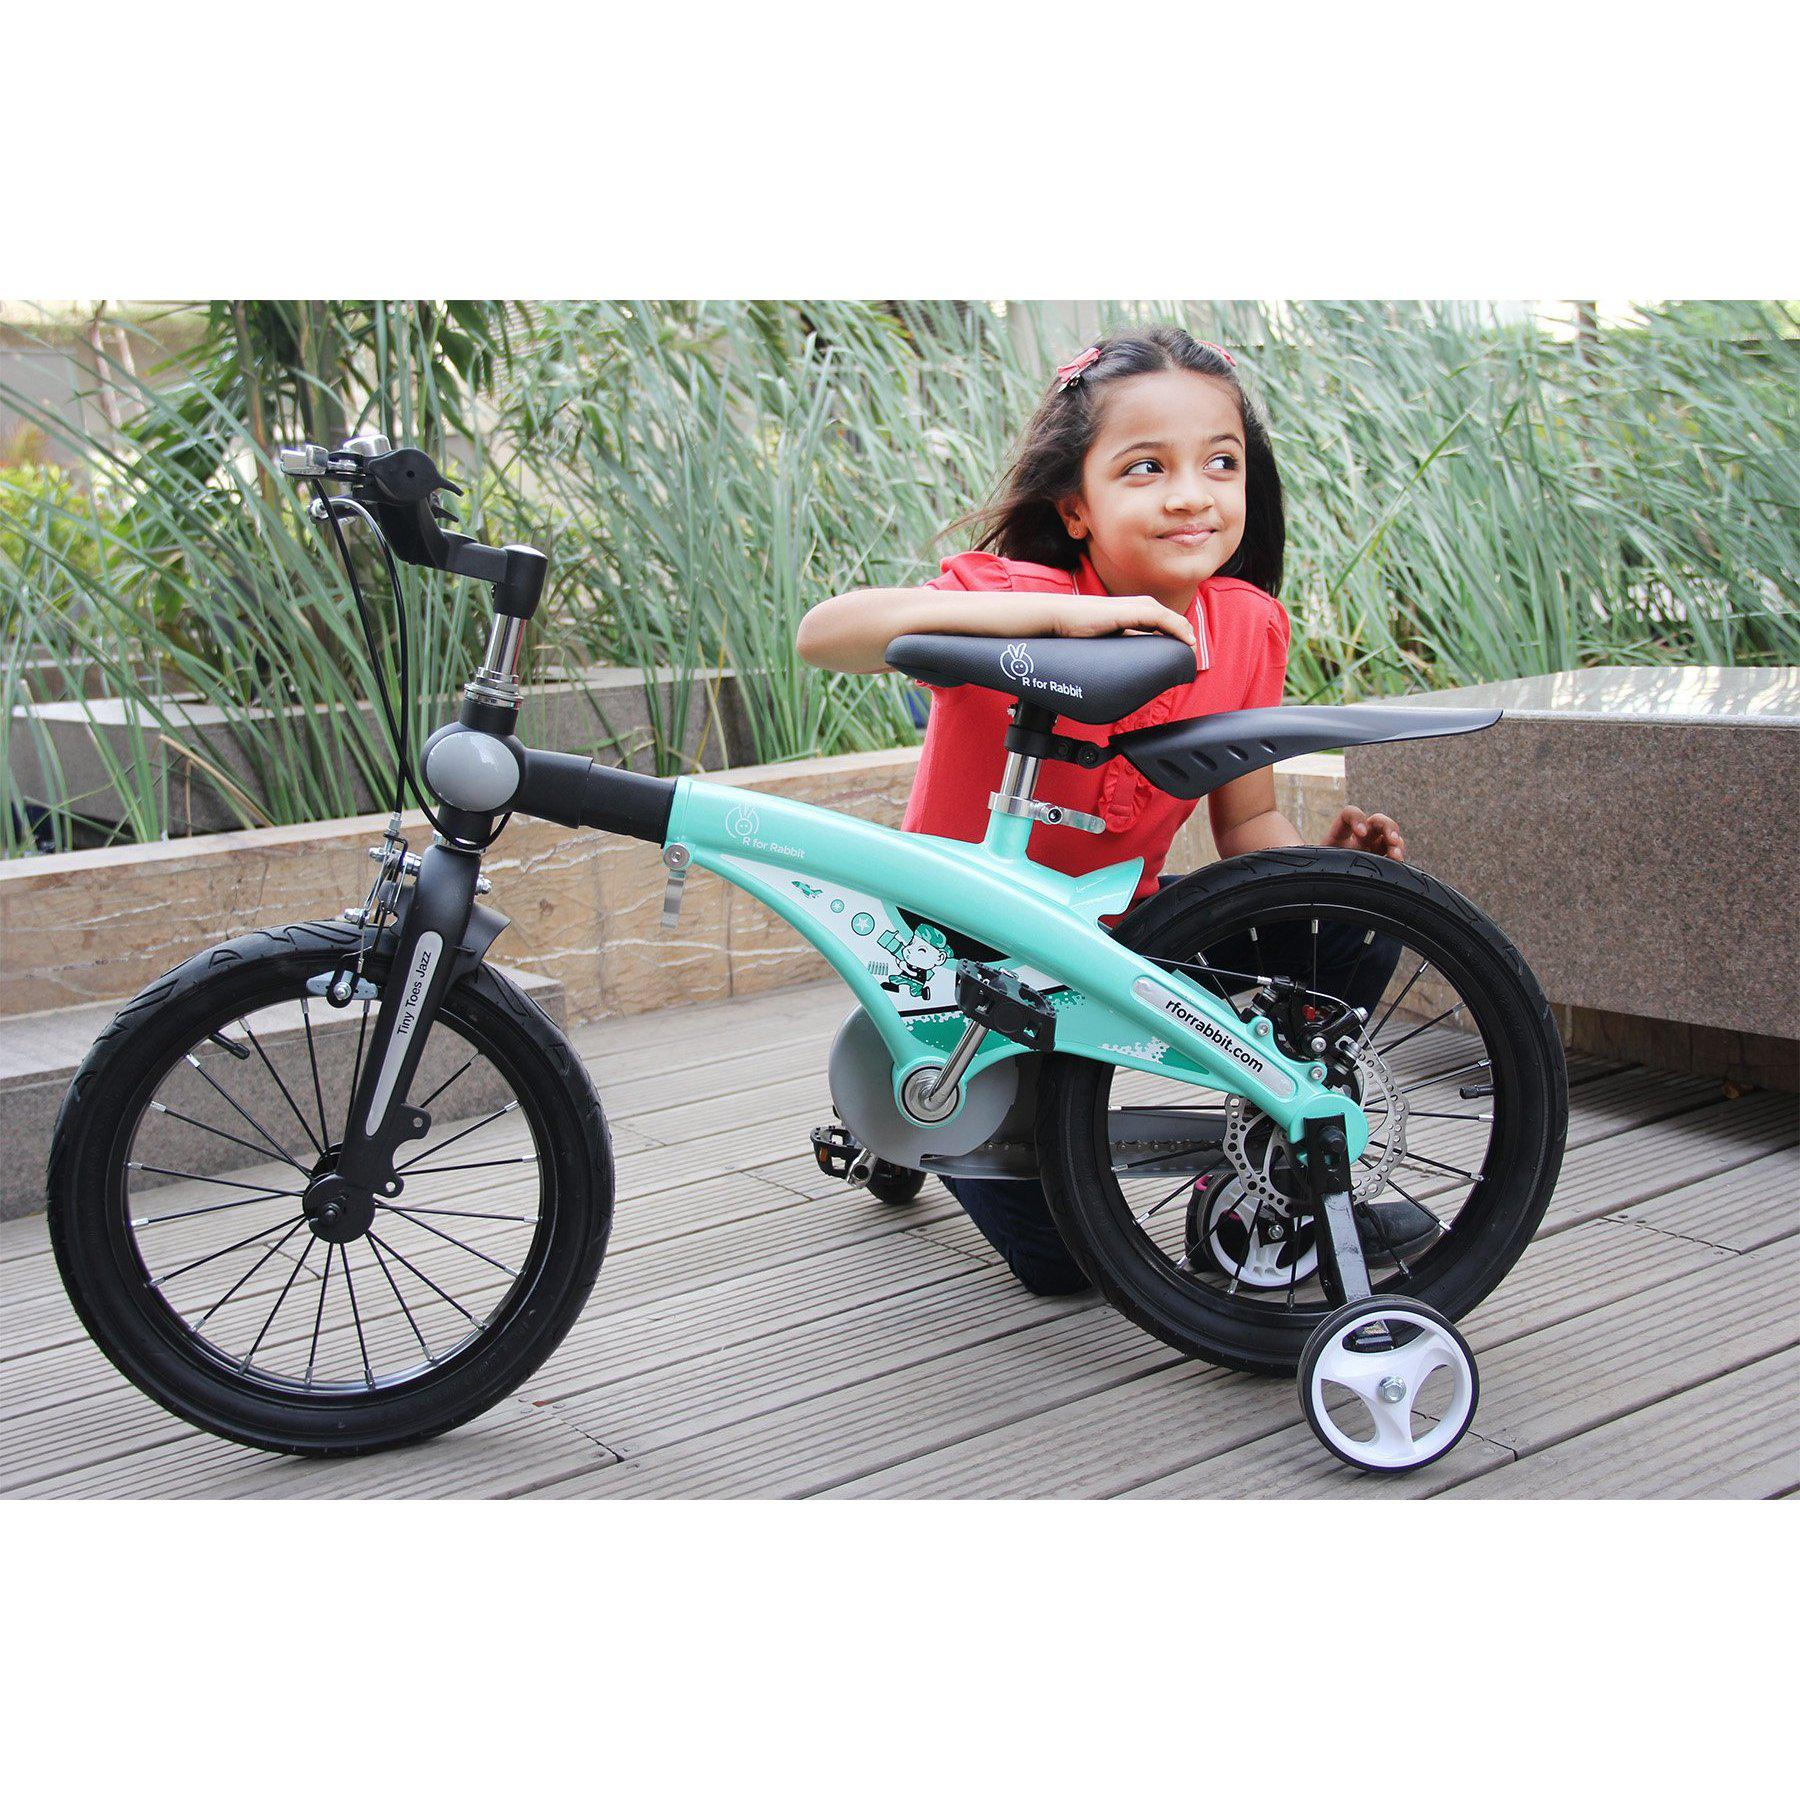 R for Rabbit Tiny Toes Jazz- The Smart Plug and Play Bicycle (16 inch/T - for 4-7 yrs)